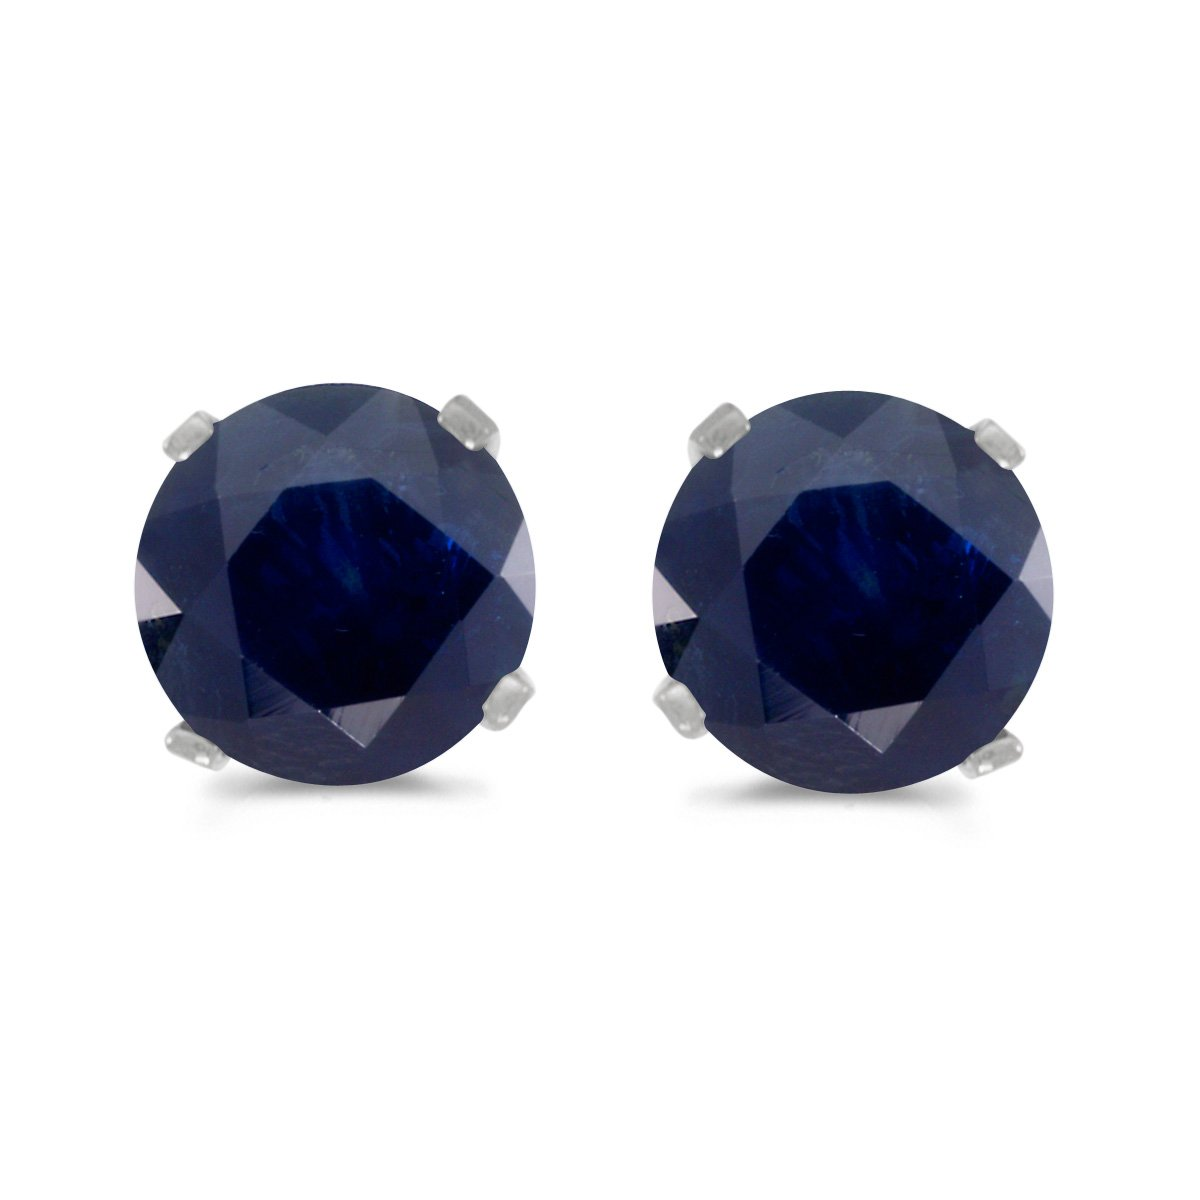 1 Carat Total Weight Natural Round Sapphire Stud Earrings Set in 14k White Gold